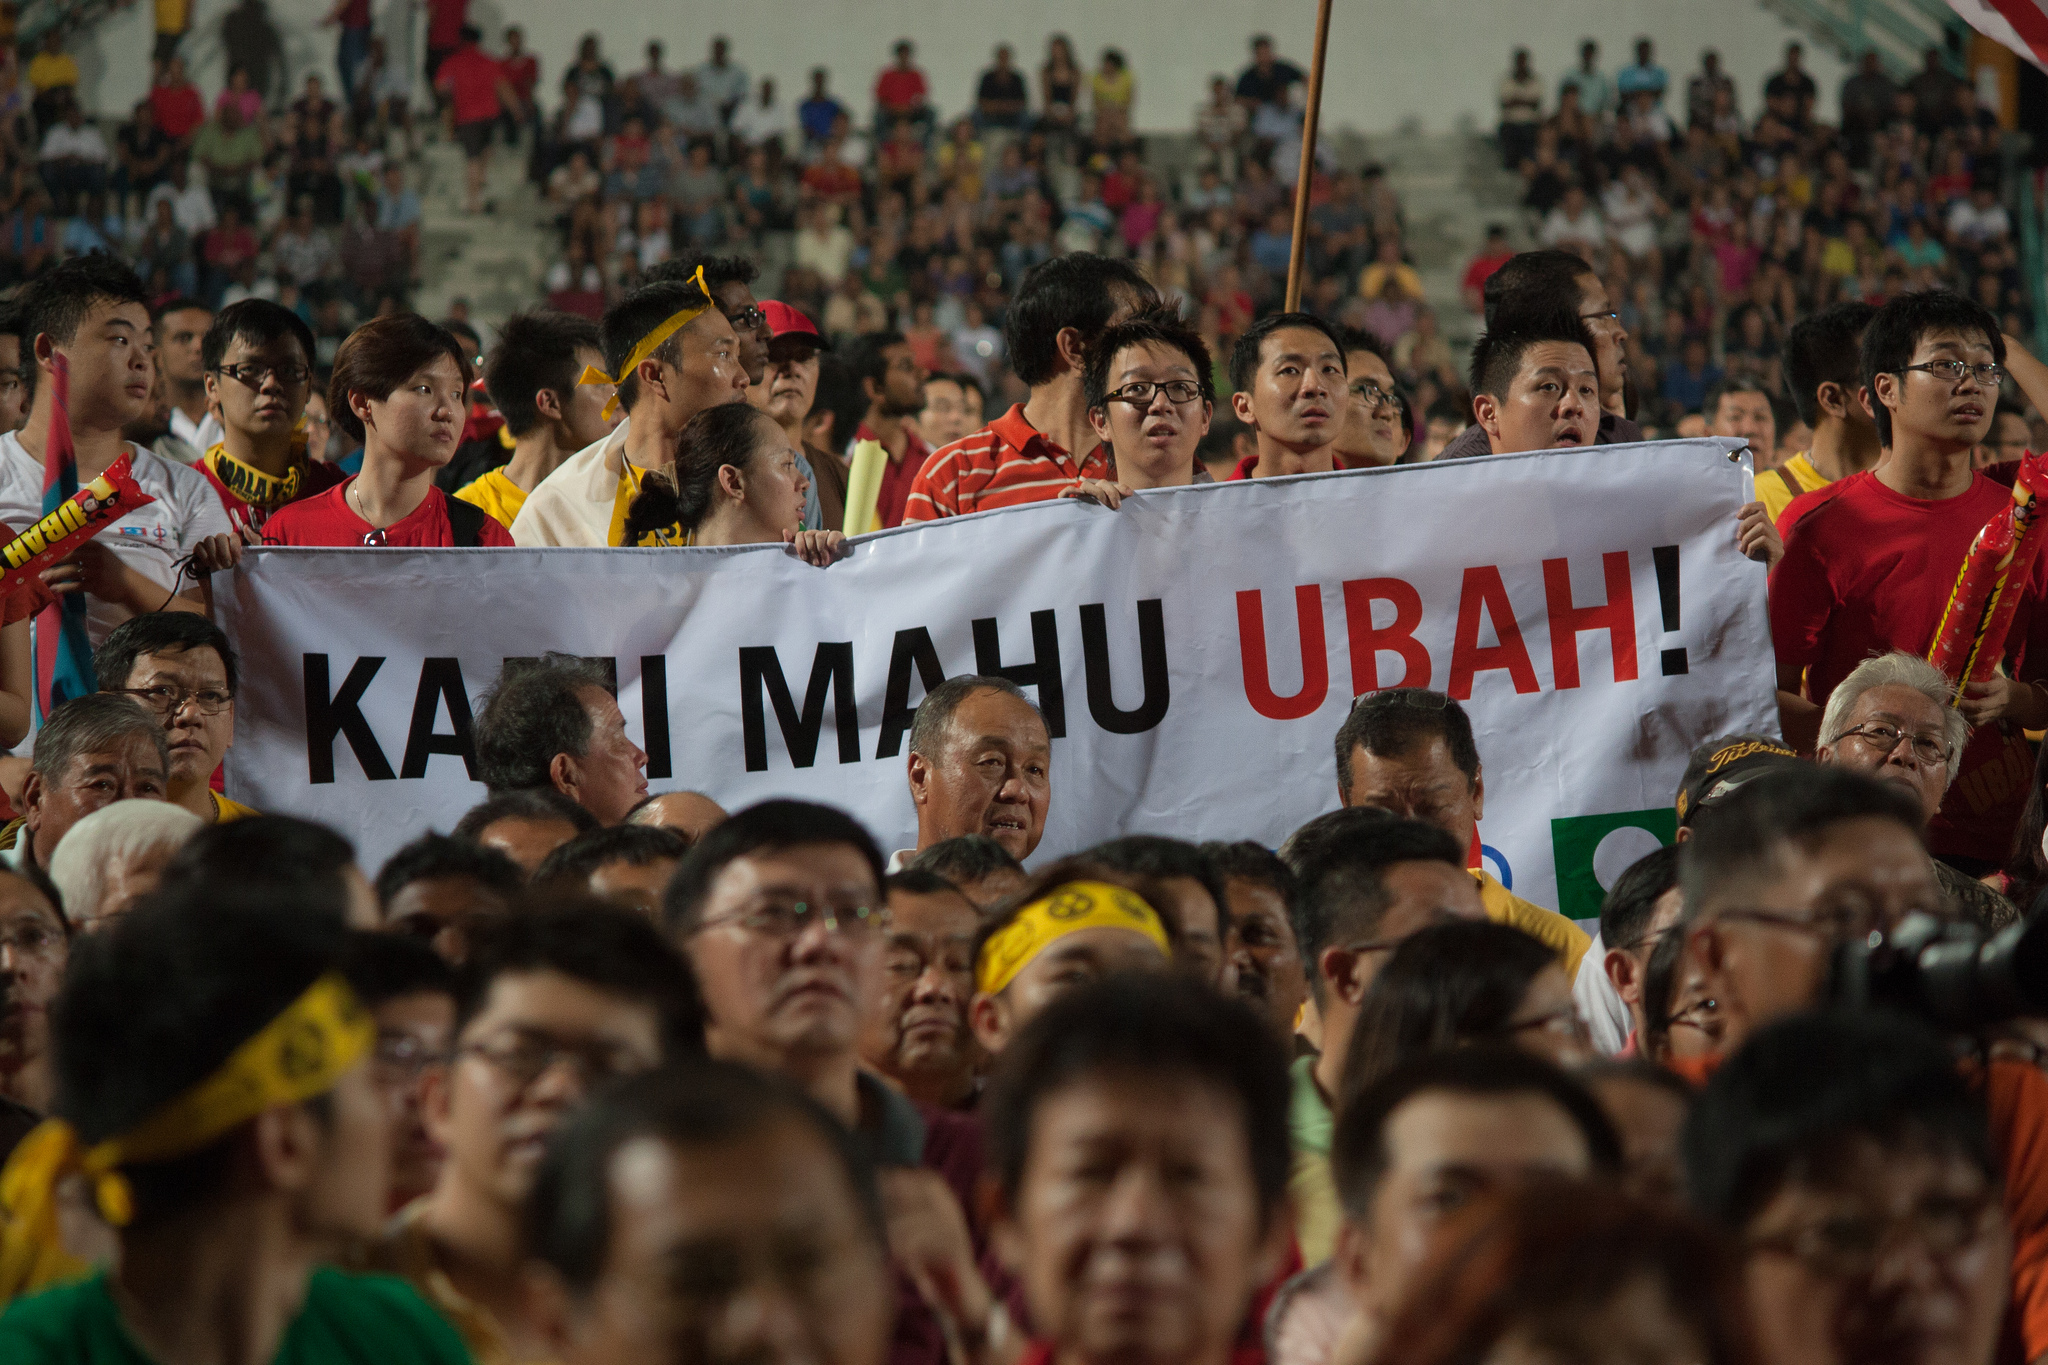 Malaysians participating in a rally to express their desire for change. (Photo: Obtained via a Flickr account. Licensed under Creative Commons.)